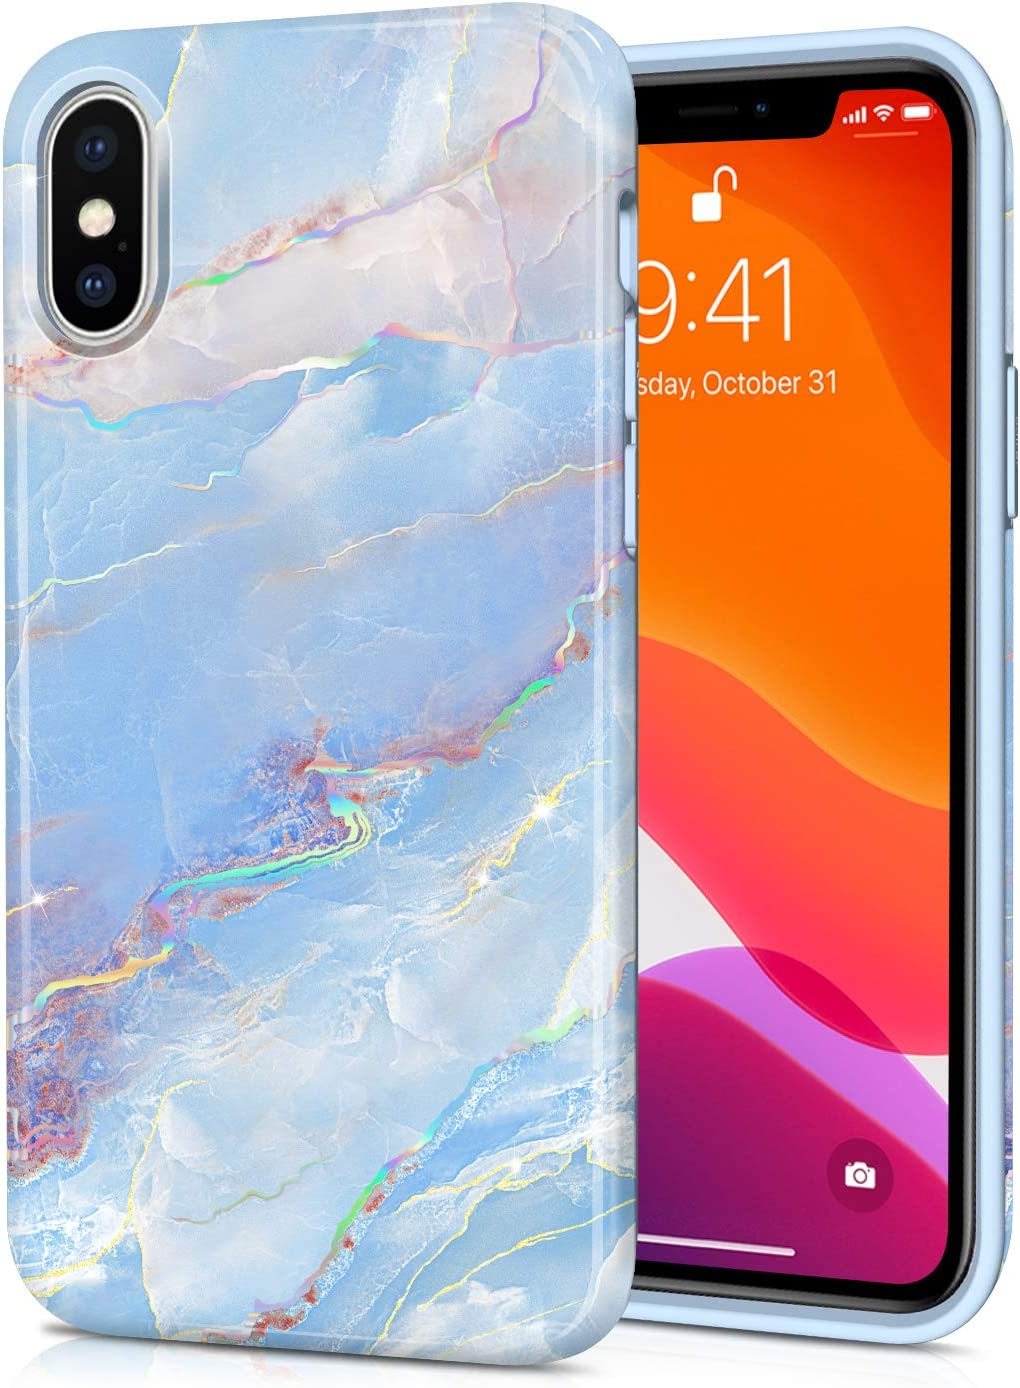 CAOUME iPhone X iPhone Xs Case Blue Marble Design Sparkly Glitter Protective Stylish Slim Thin Cute Holographic Cases for Apple Phone, Soft TPU Silicone Bumper Defender Camera Screen